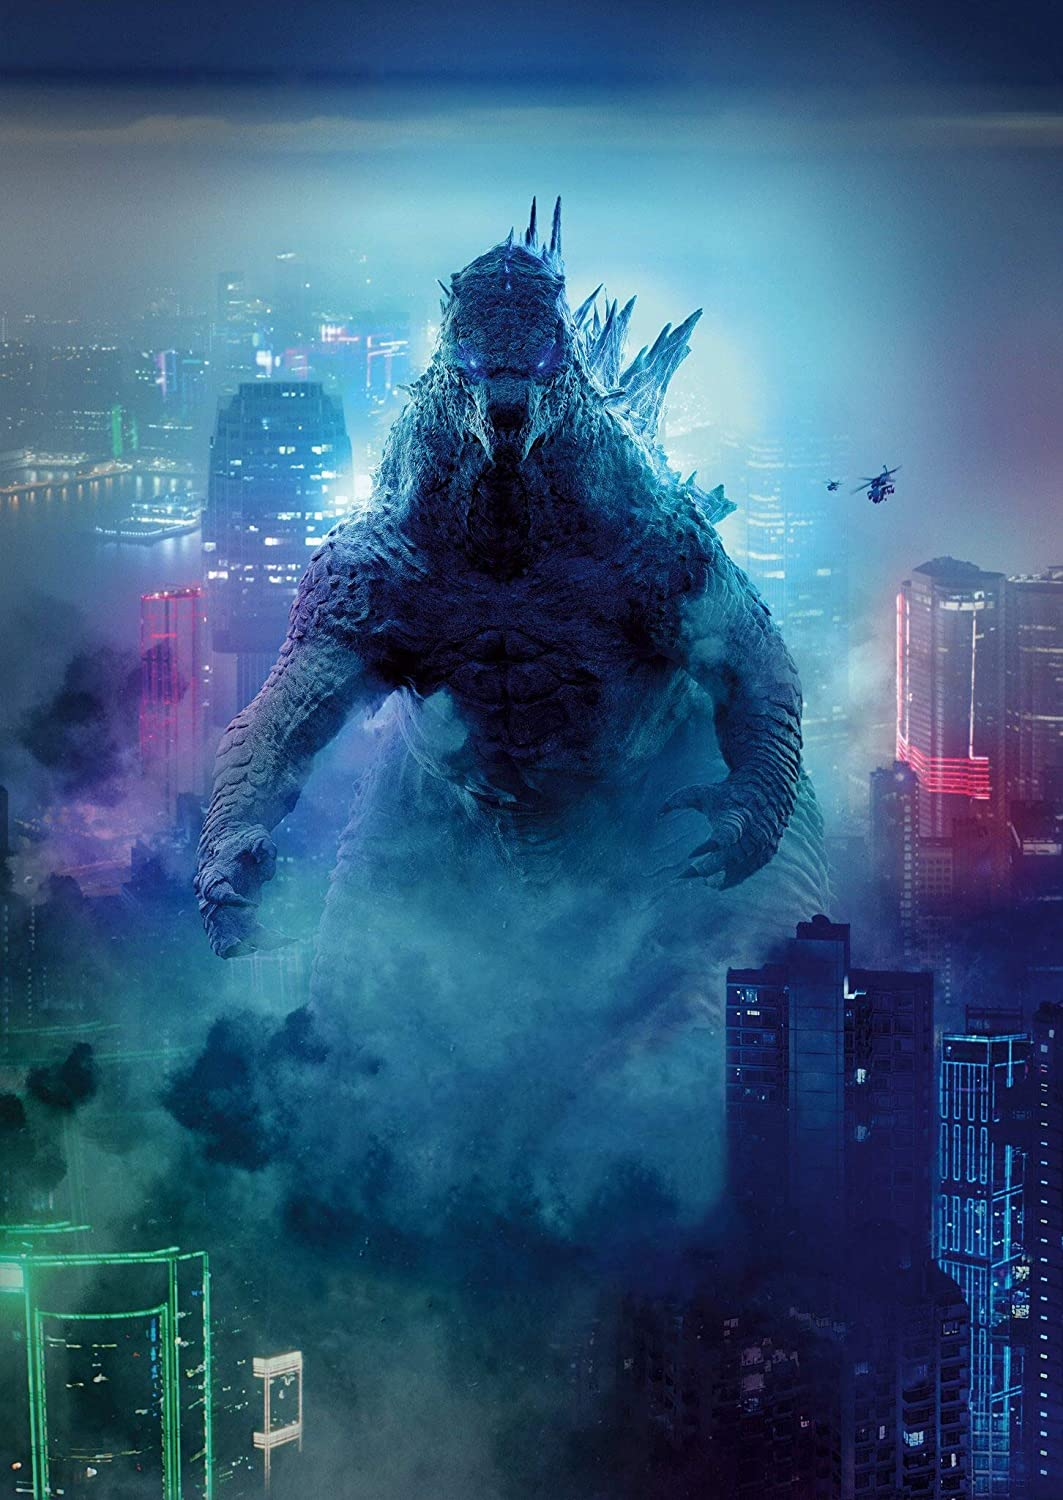 Monster Vs King Kong 2021 Movie Sale SALE% OFF wholesale Home Poster Canvas Wa Decoration